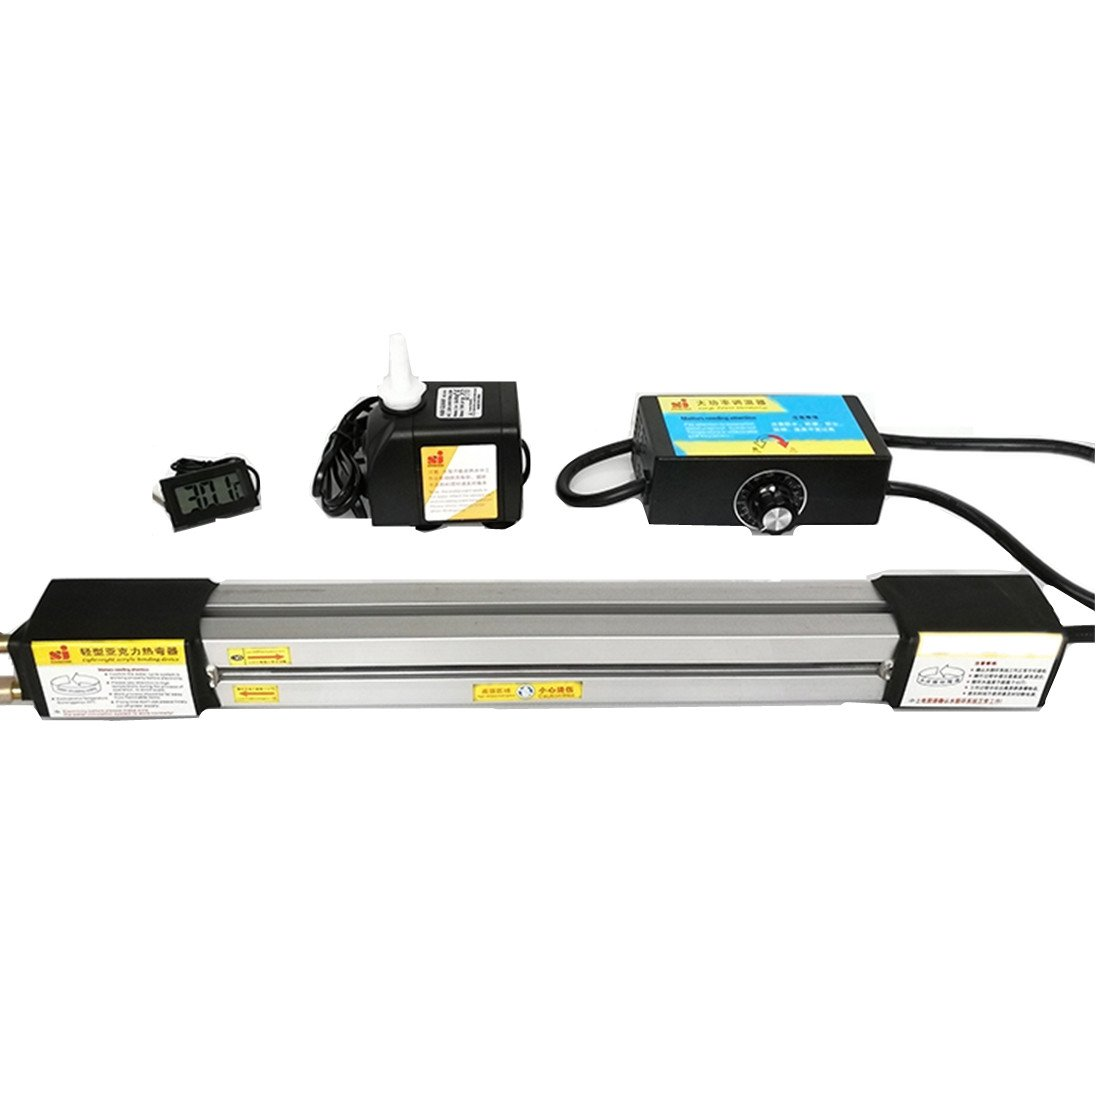 Acrylic Lightbox Plastic PVC Bending Machine 23.6 in(60cm) Acrylic Heater Bender AC 110V for Device Advertising Signs and Light Box